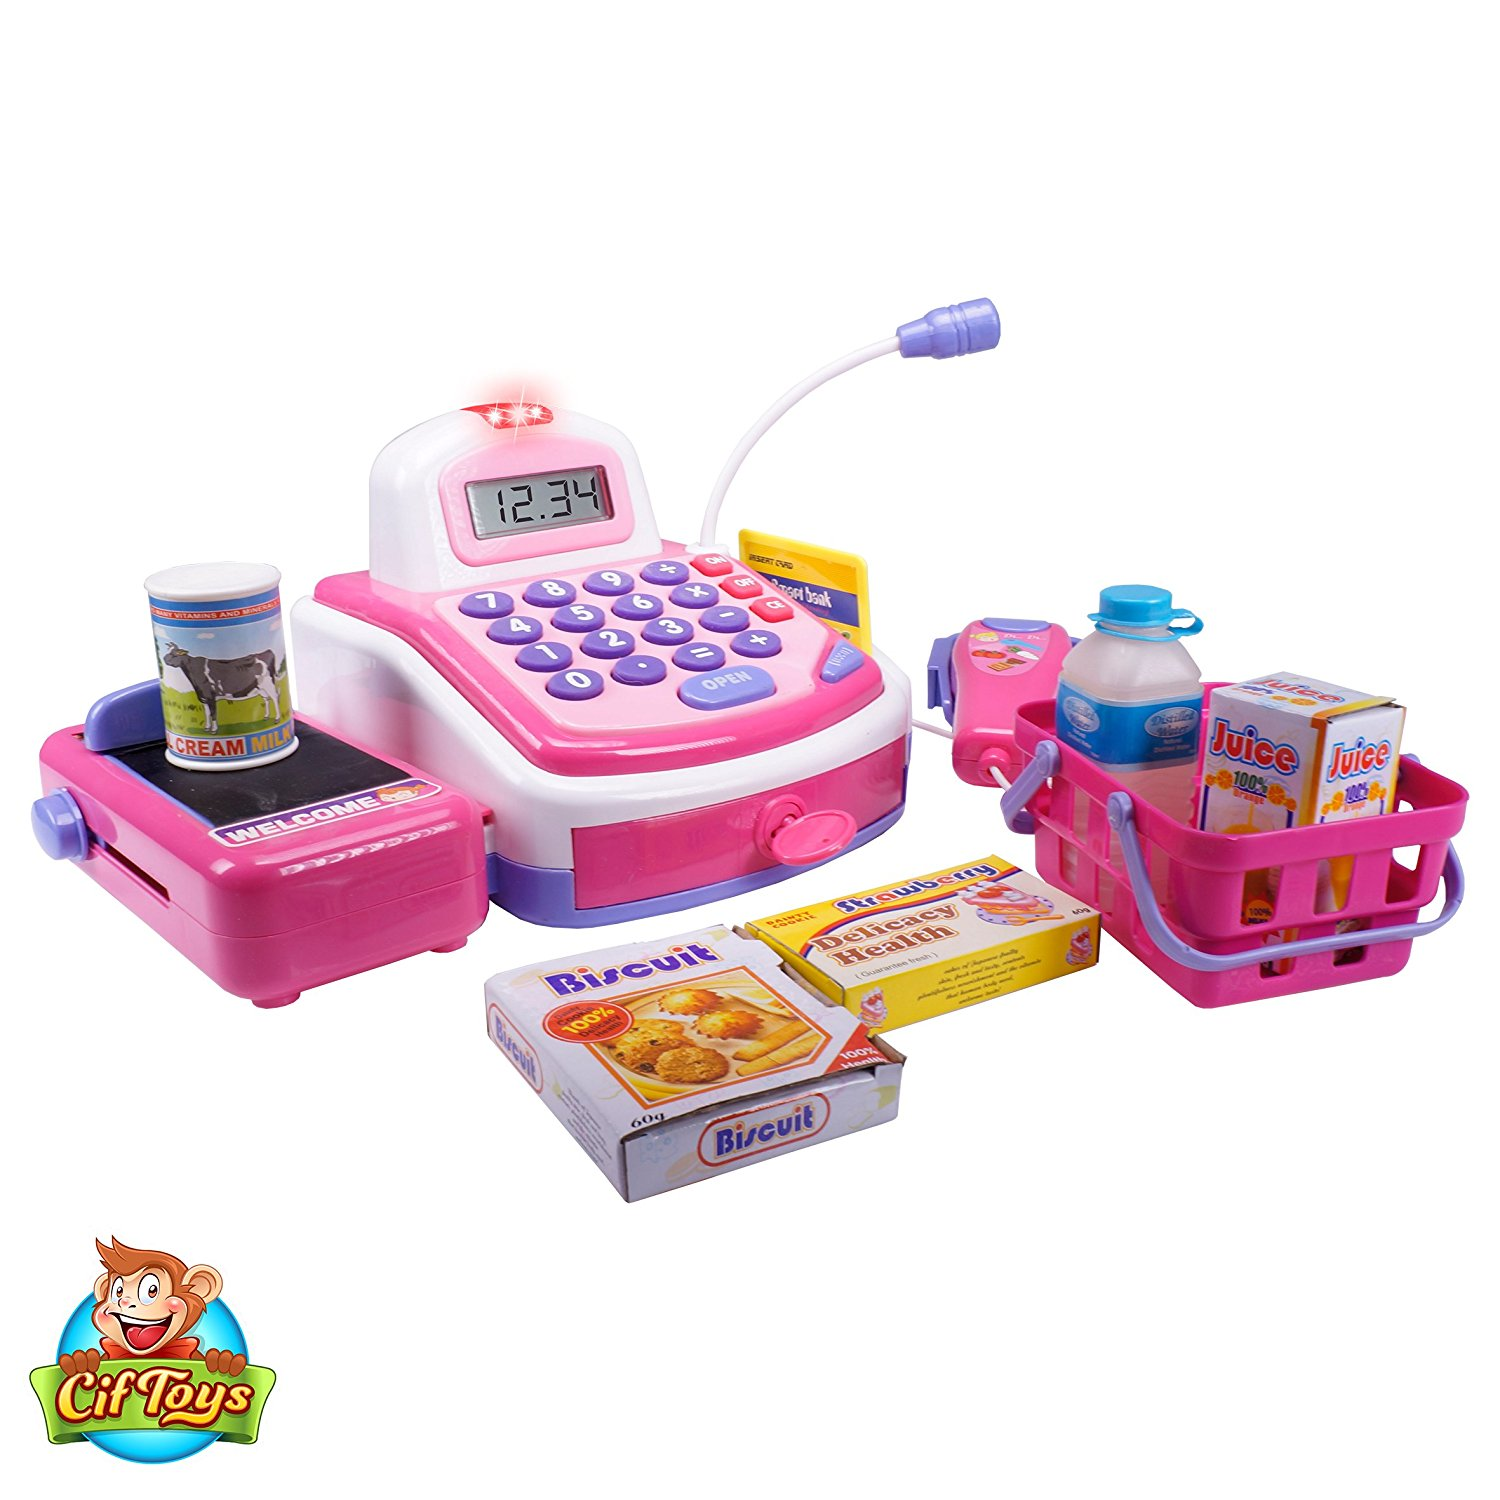 Cashier Toy Cash Register Playset By Ciftoys Pretend Play Set For